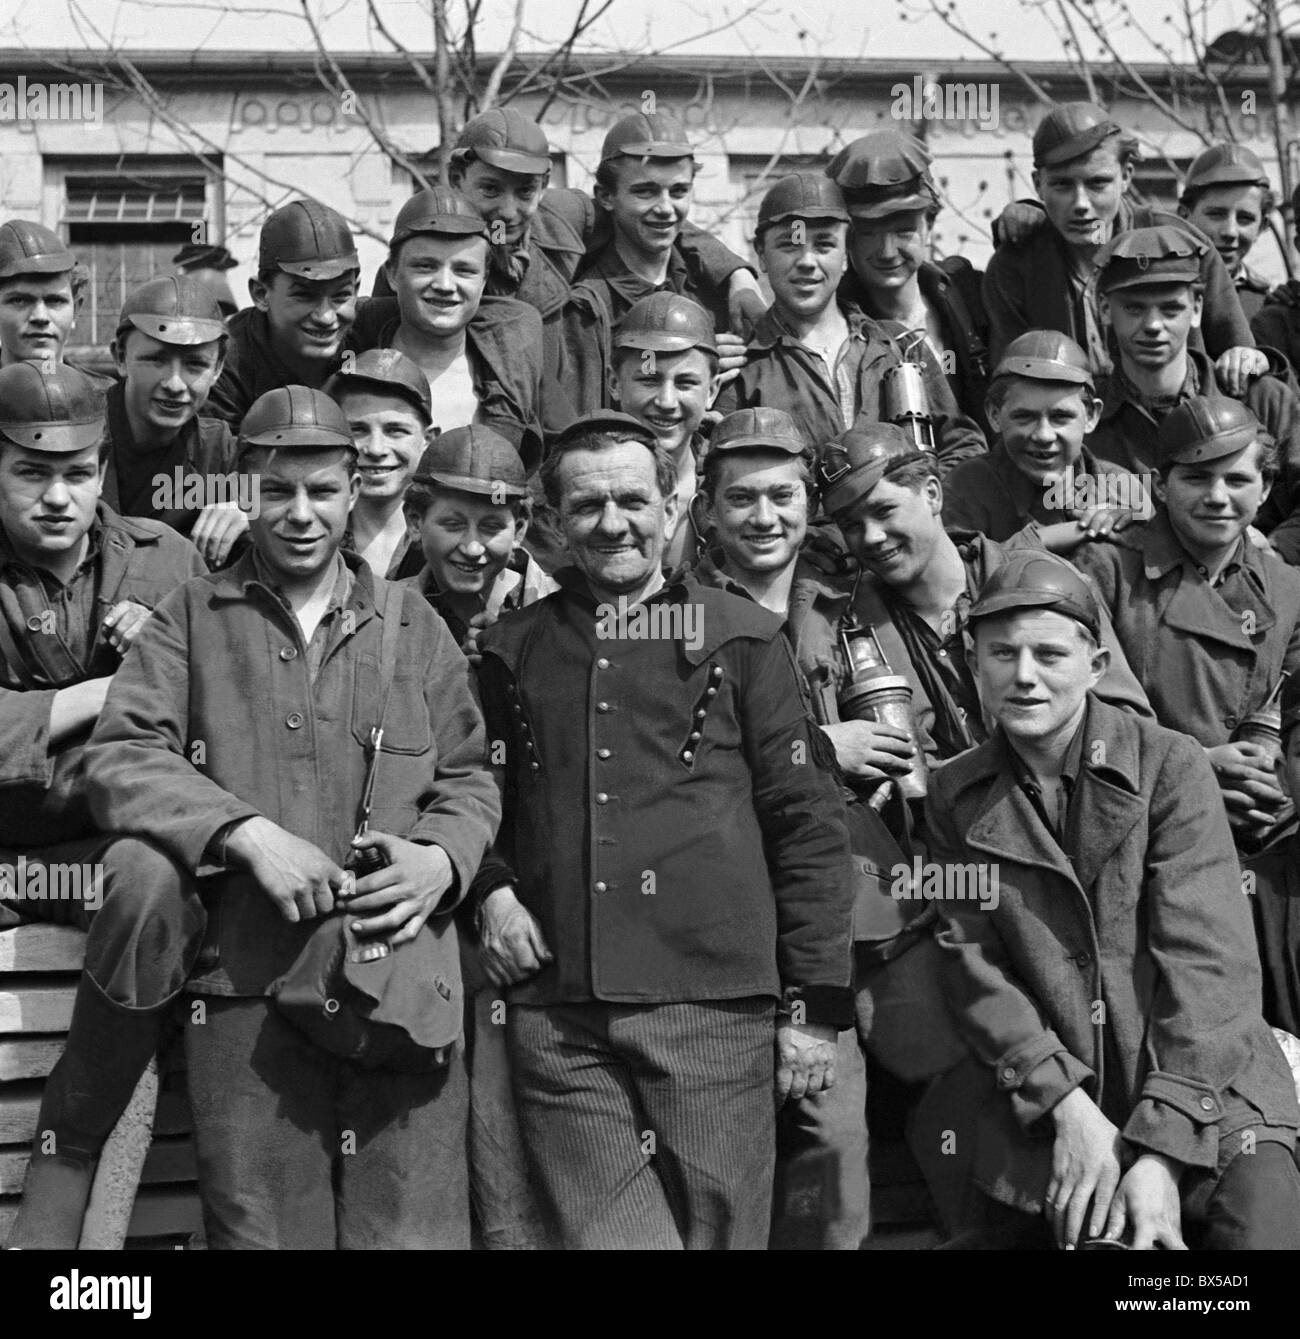 Czechoslovakia - Most, 1950. Young coalminers pose for photo with their forman. CTK Vintage Photo - Stock Image